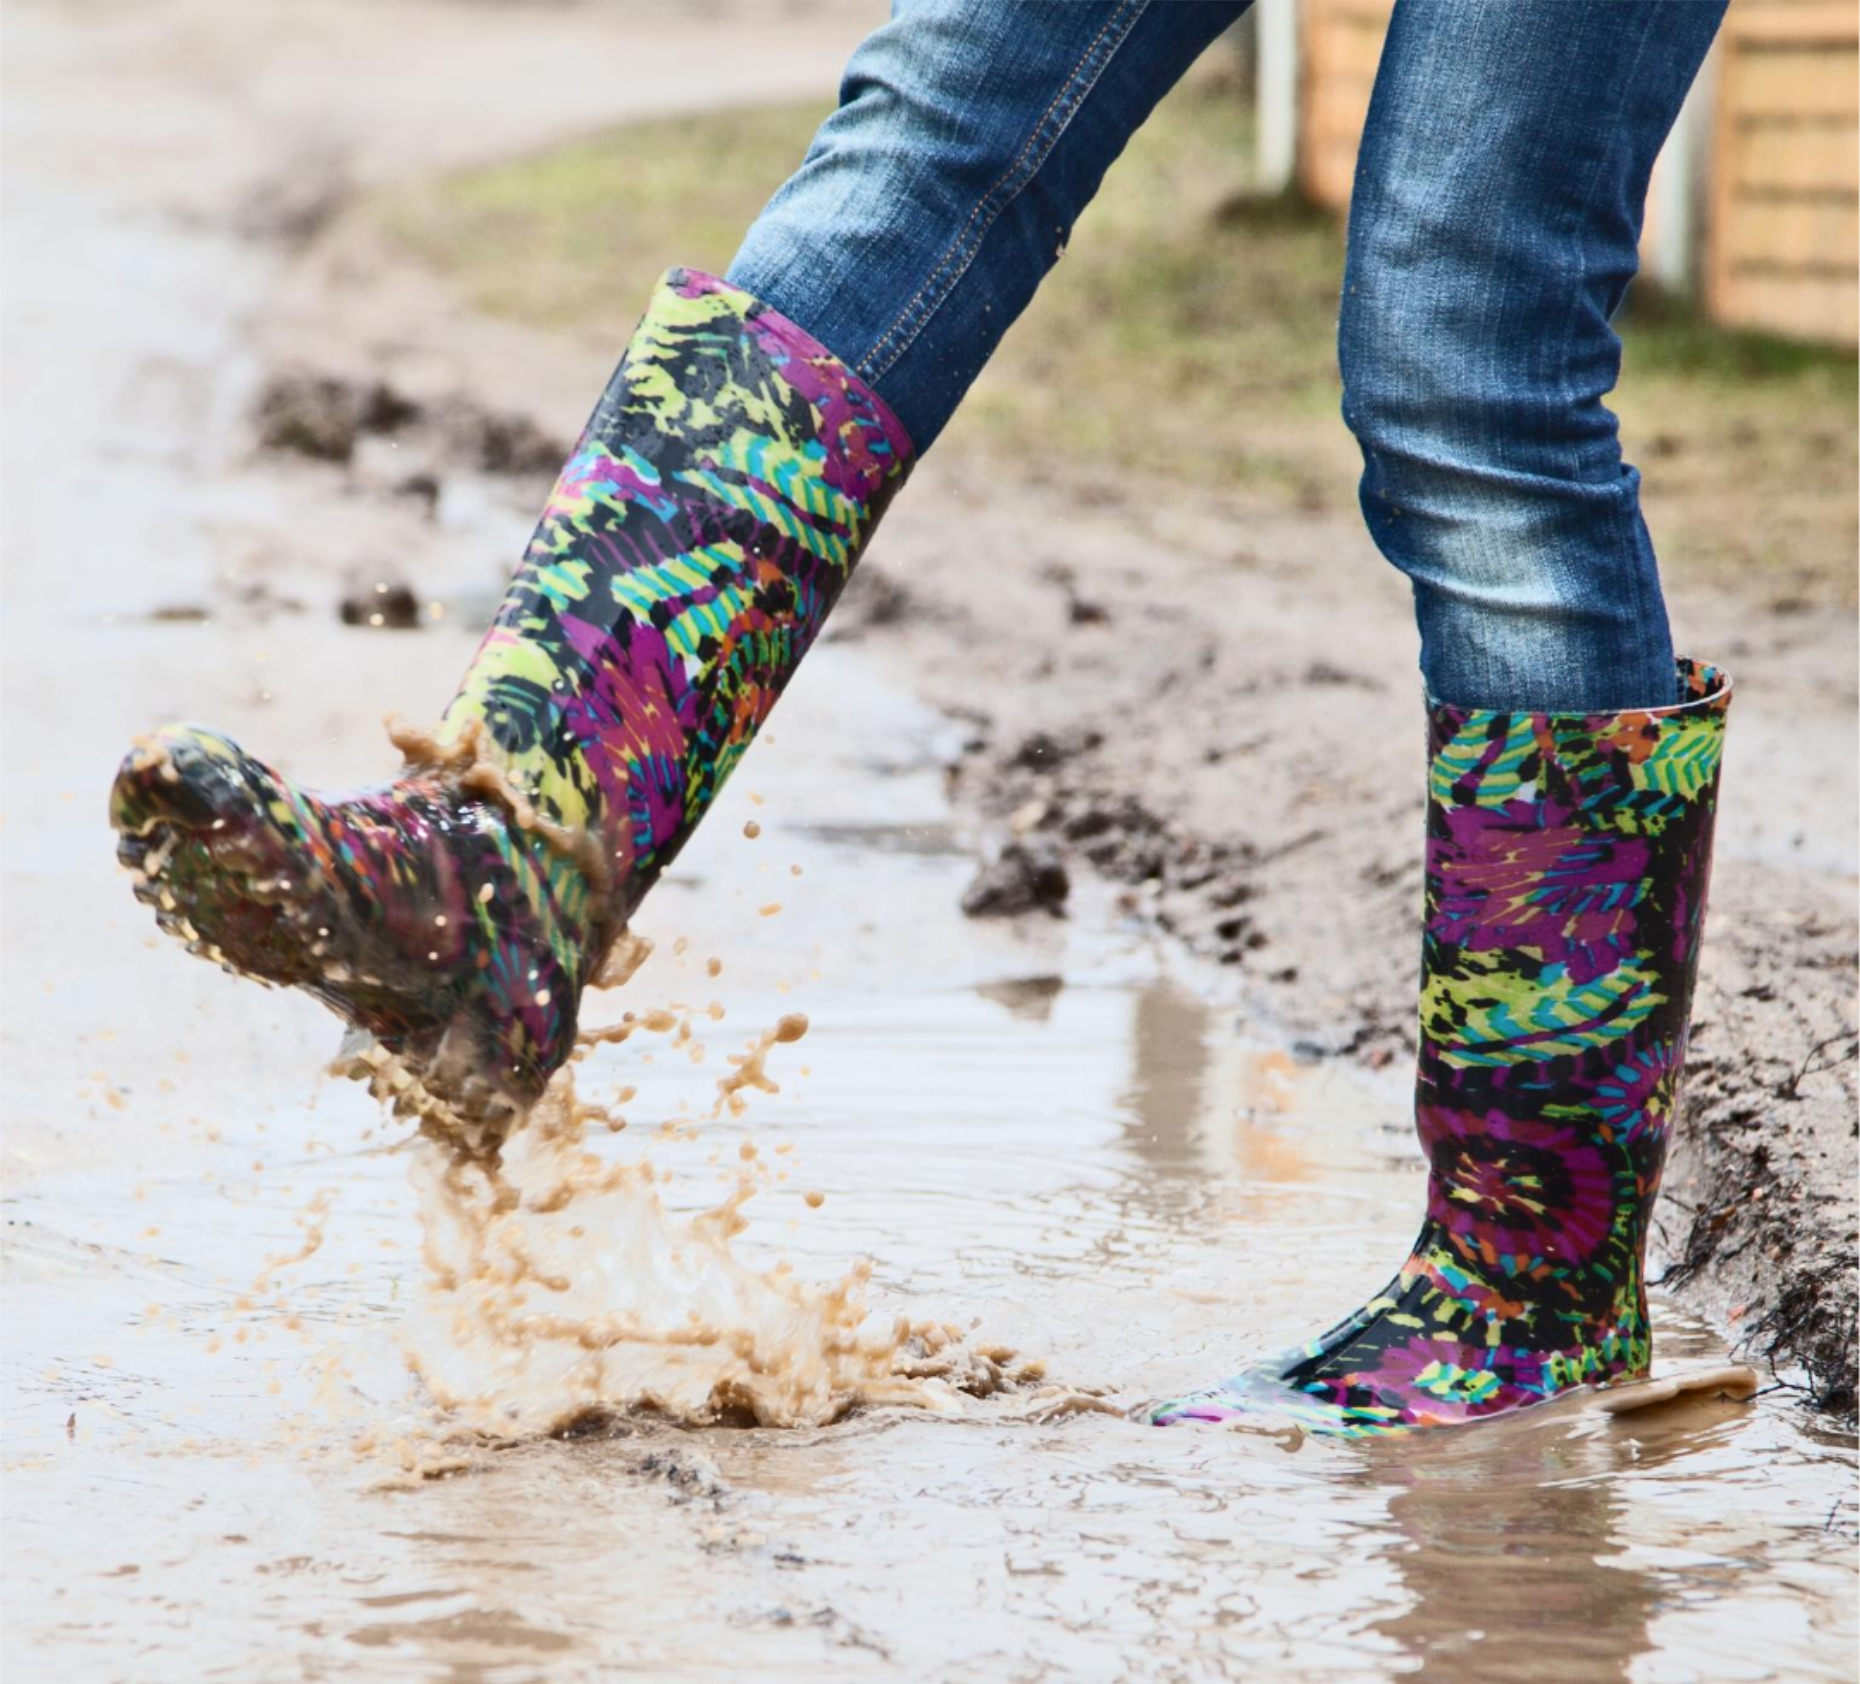 Elizabeth in wellington boots, jumping in a puddle